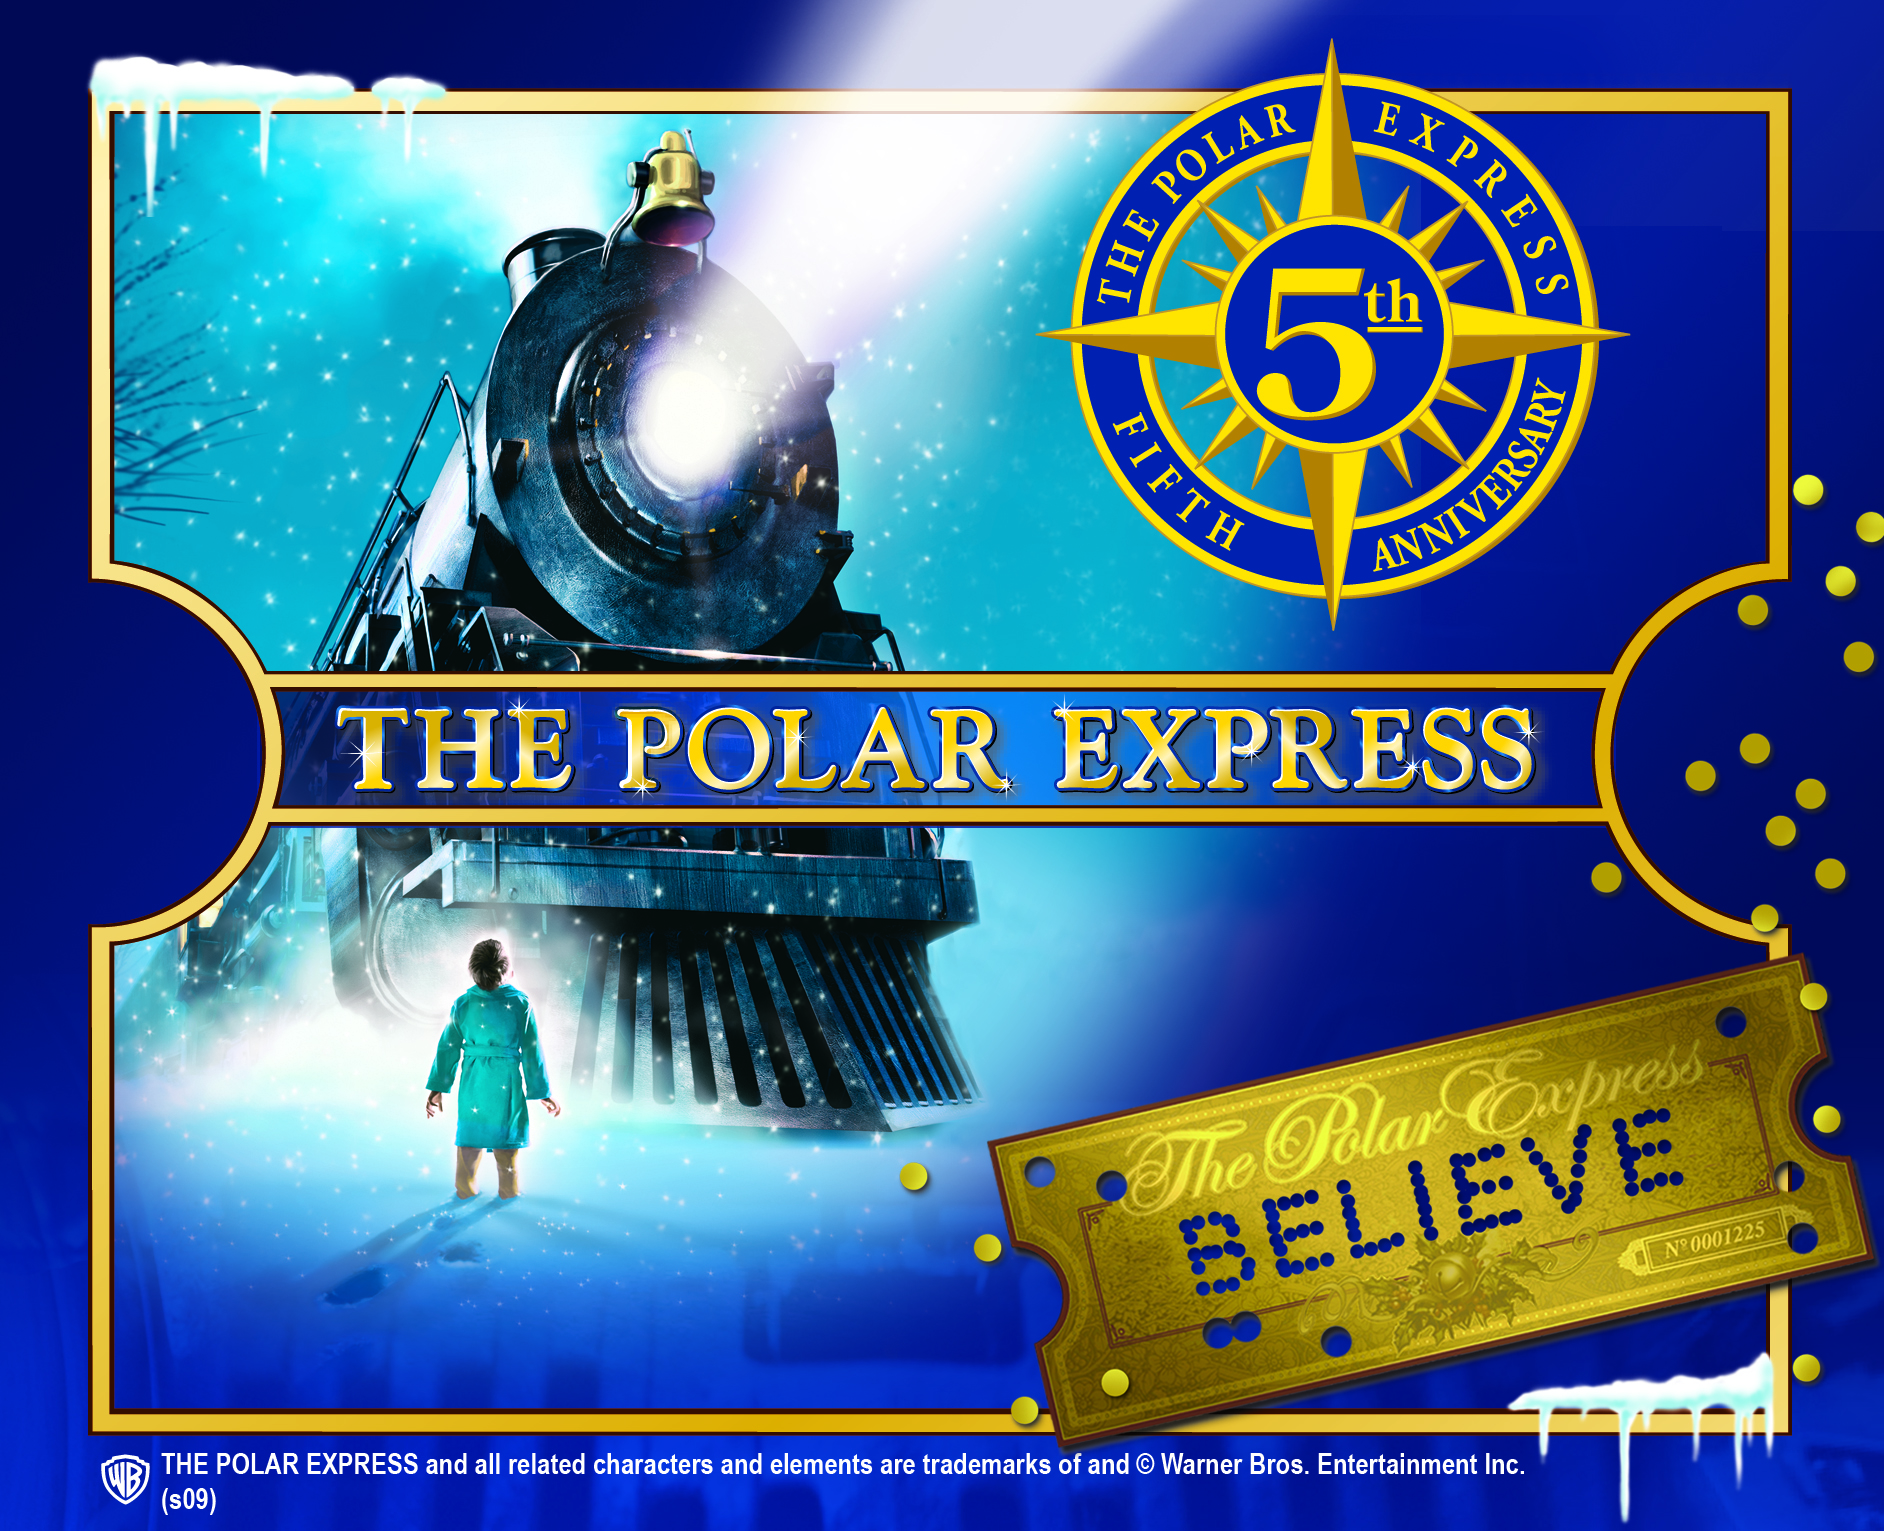 Polar express train comes to life at great smoky mountains for What is the best polar express train ride